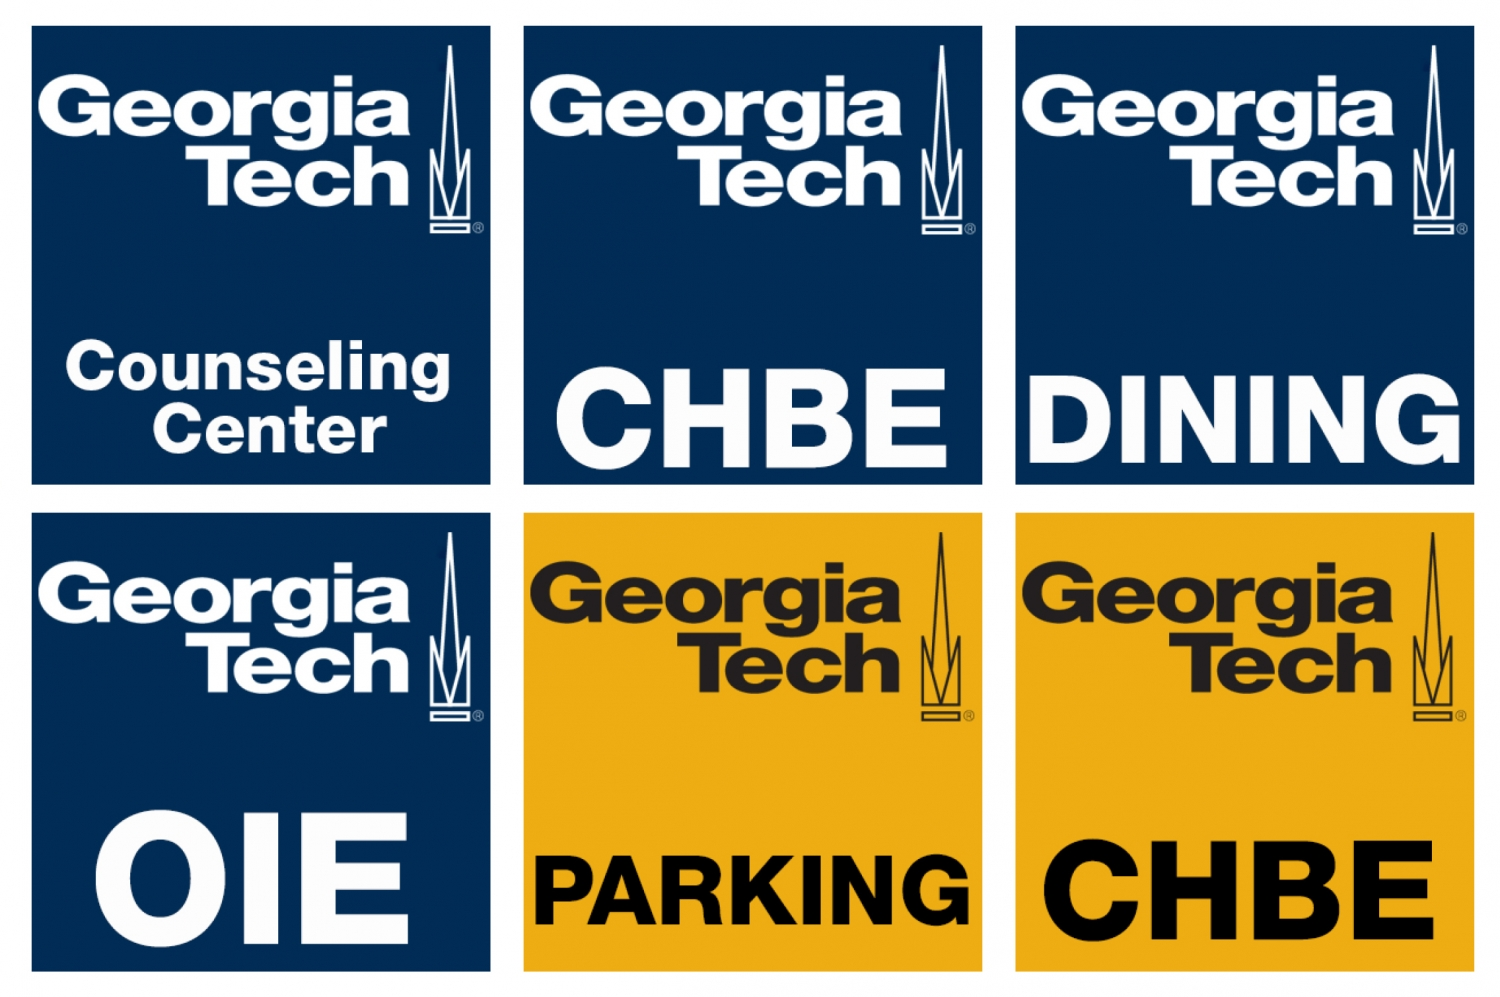 Examples of Georgia Tech social media icons